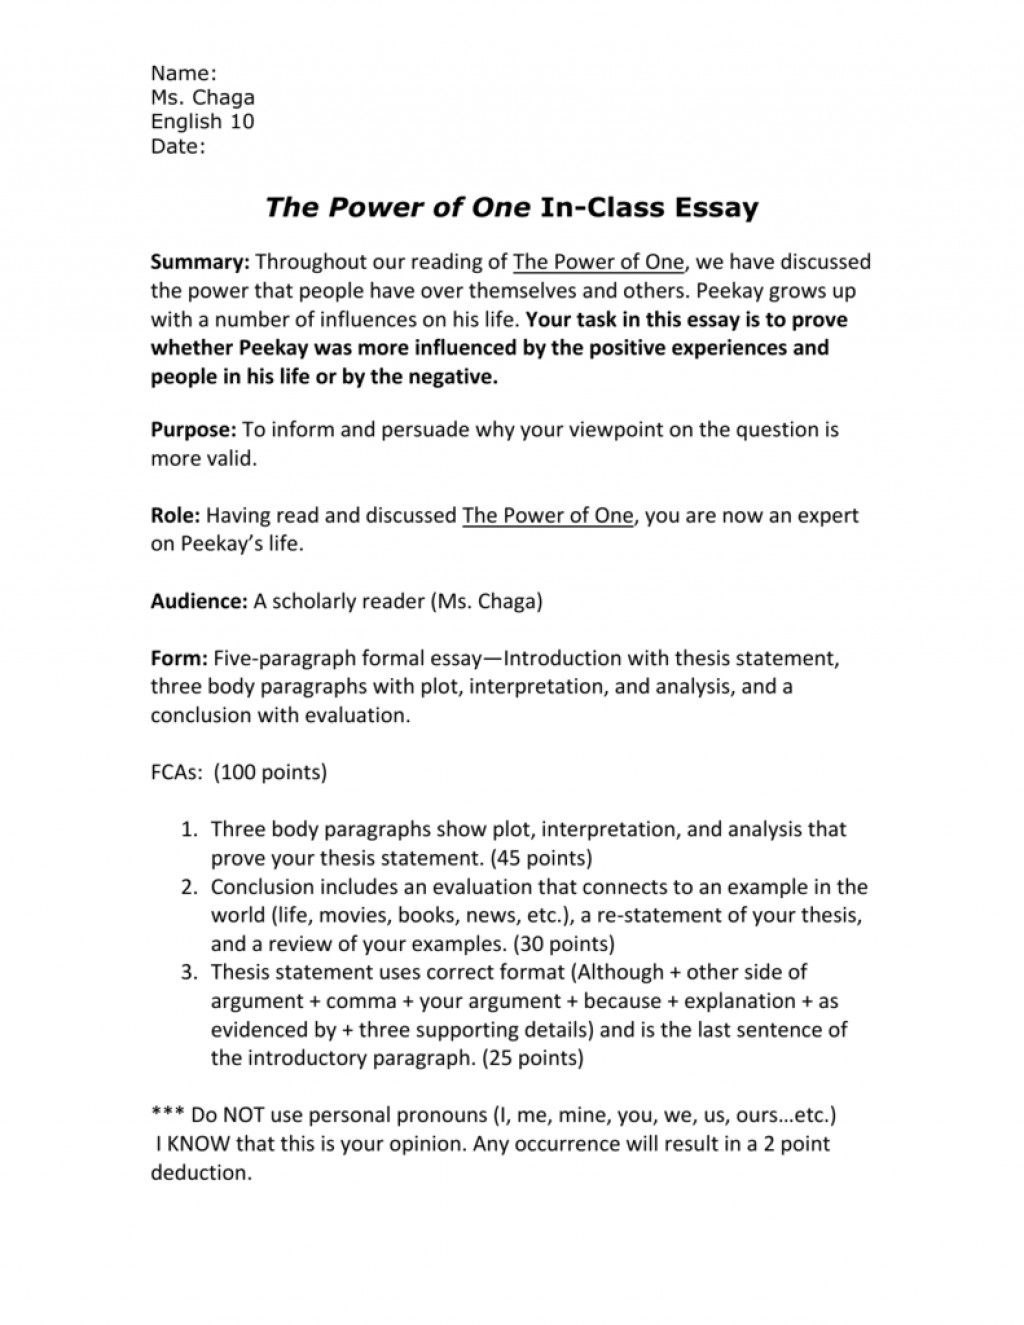 002 Power Essay Example 008012164 1 Shocking Abuse Of Introduction Nuclear Black Topics Large